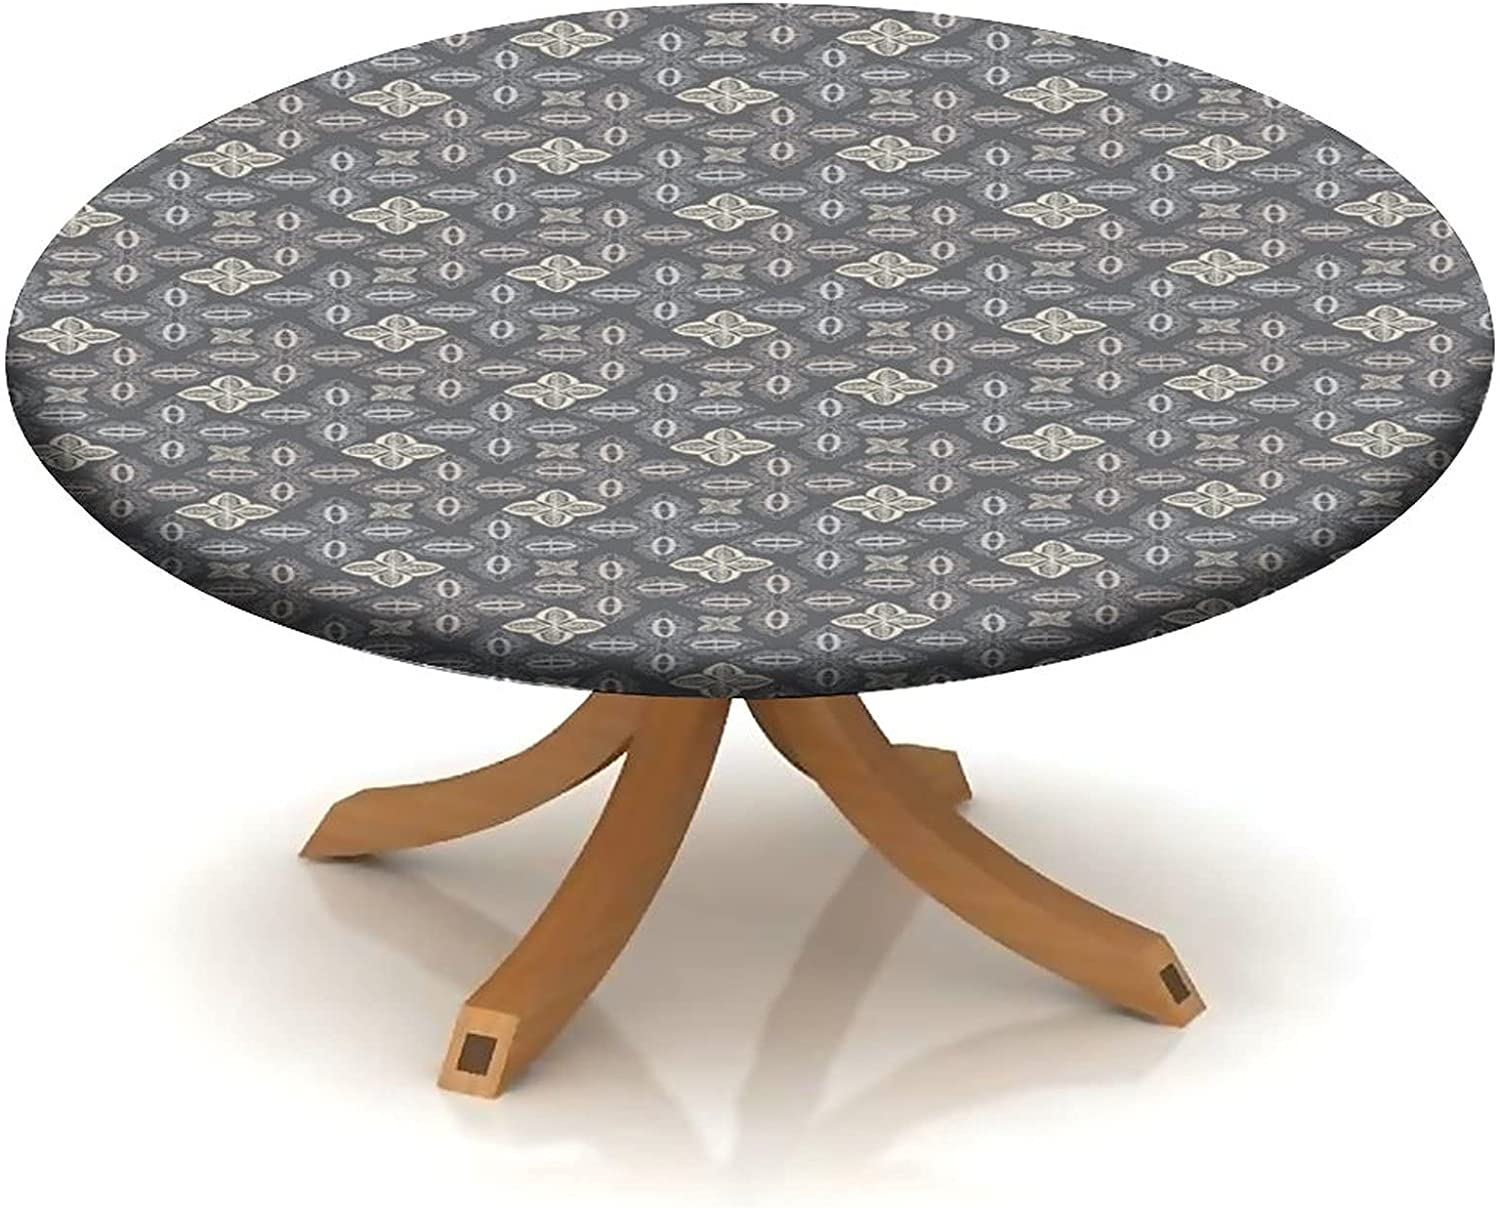 Very popular! Fitted Tablecloth for Max 64% OFF Round Table Abs Bohemian Shapes Ornamental